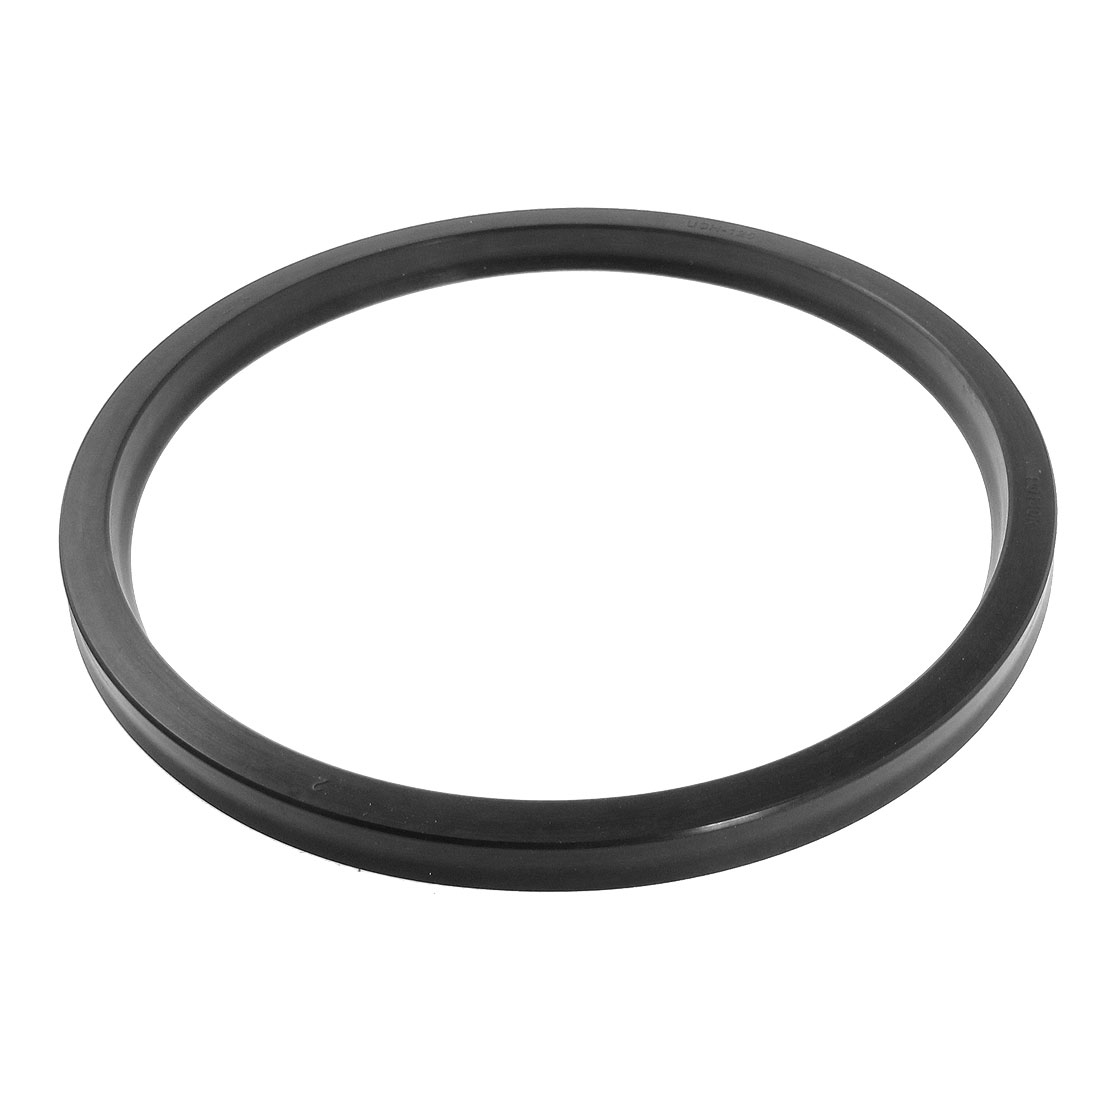 Cylinder Piston Rod USH Rubber Gasket Oil Seal 122mm x 140mm x 9mm